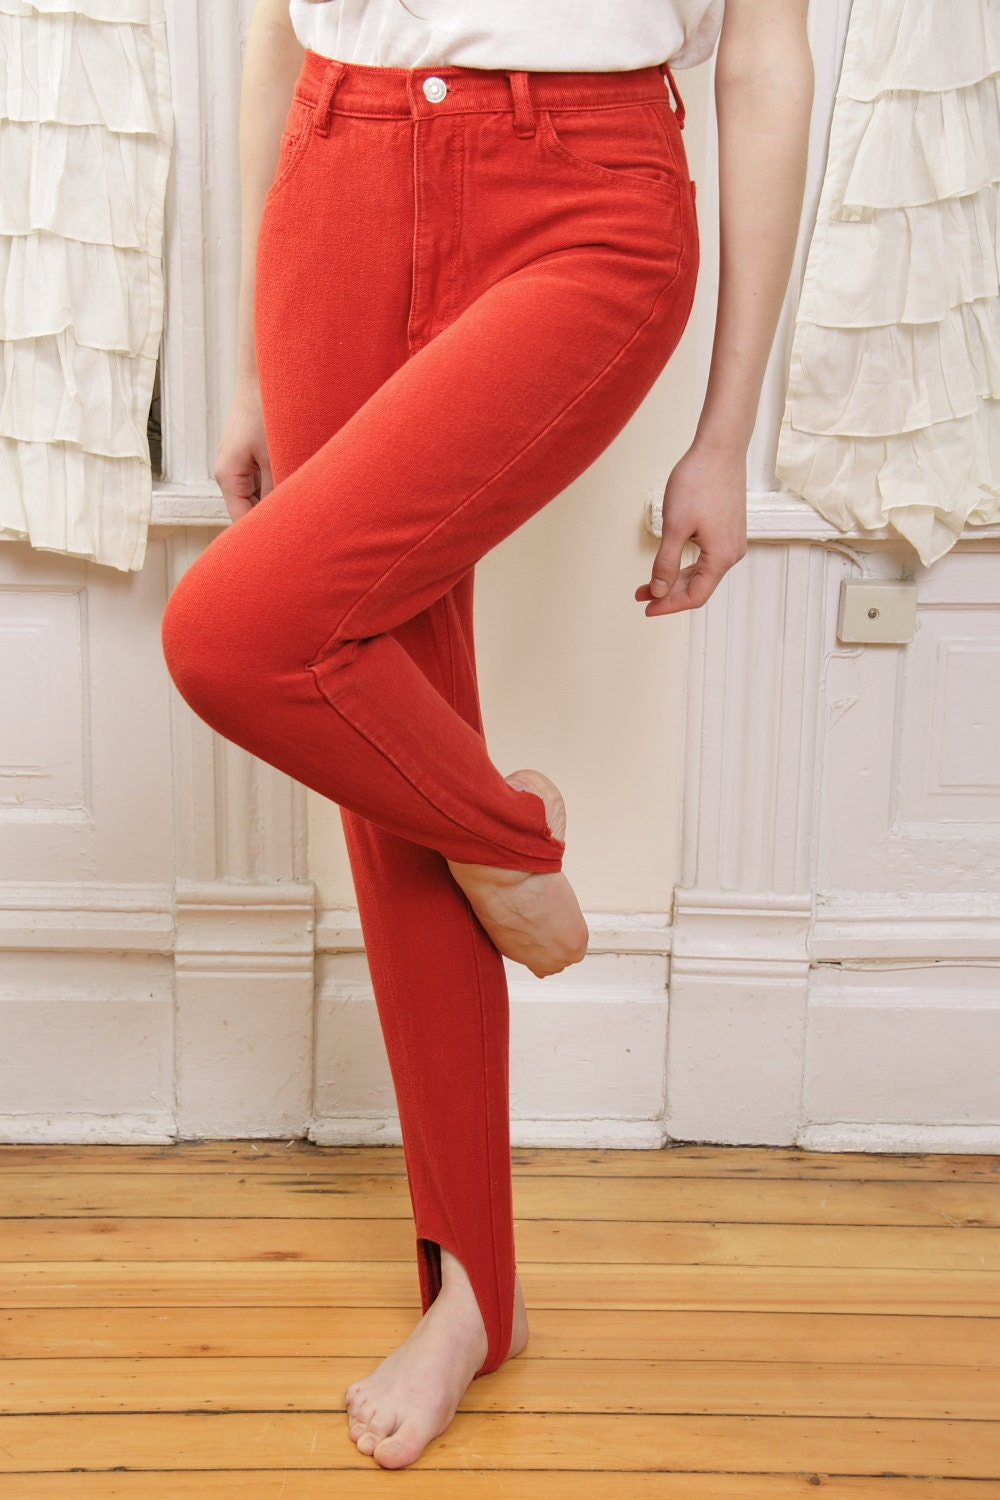 Shop for stirrup pants tall online at Target. Free shipping on purchases over $35 and save 5% every day with your Target REDcard.